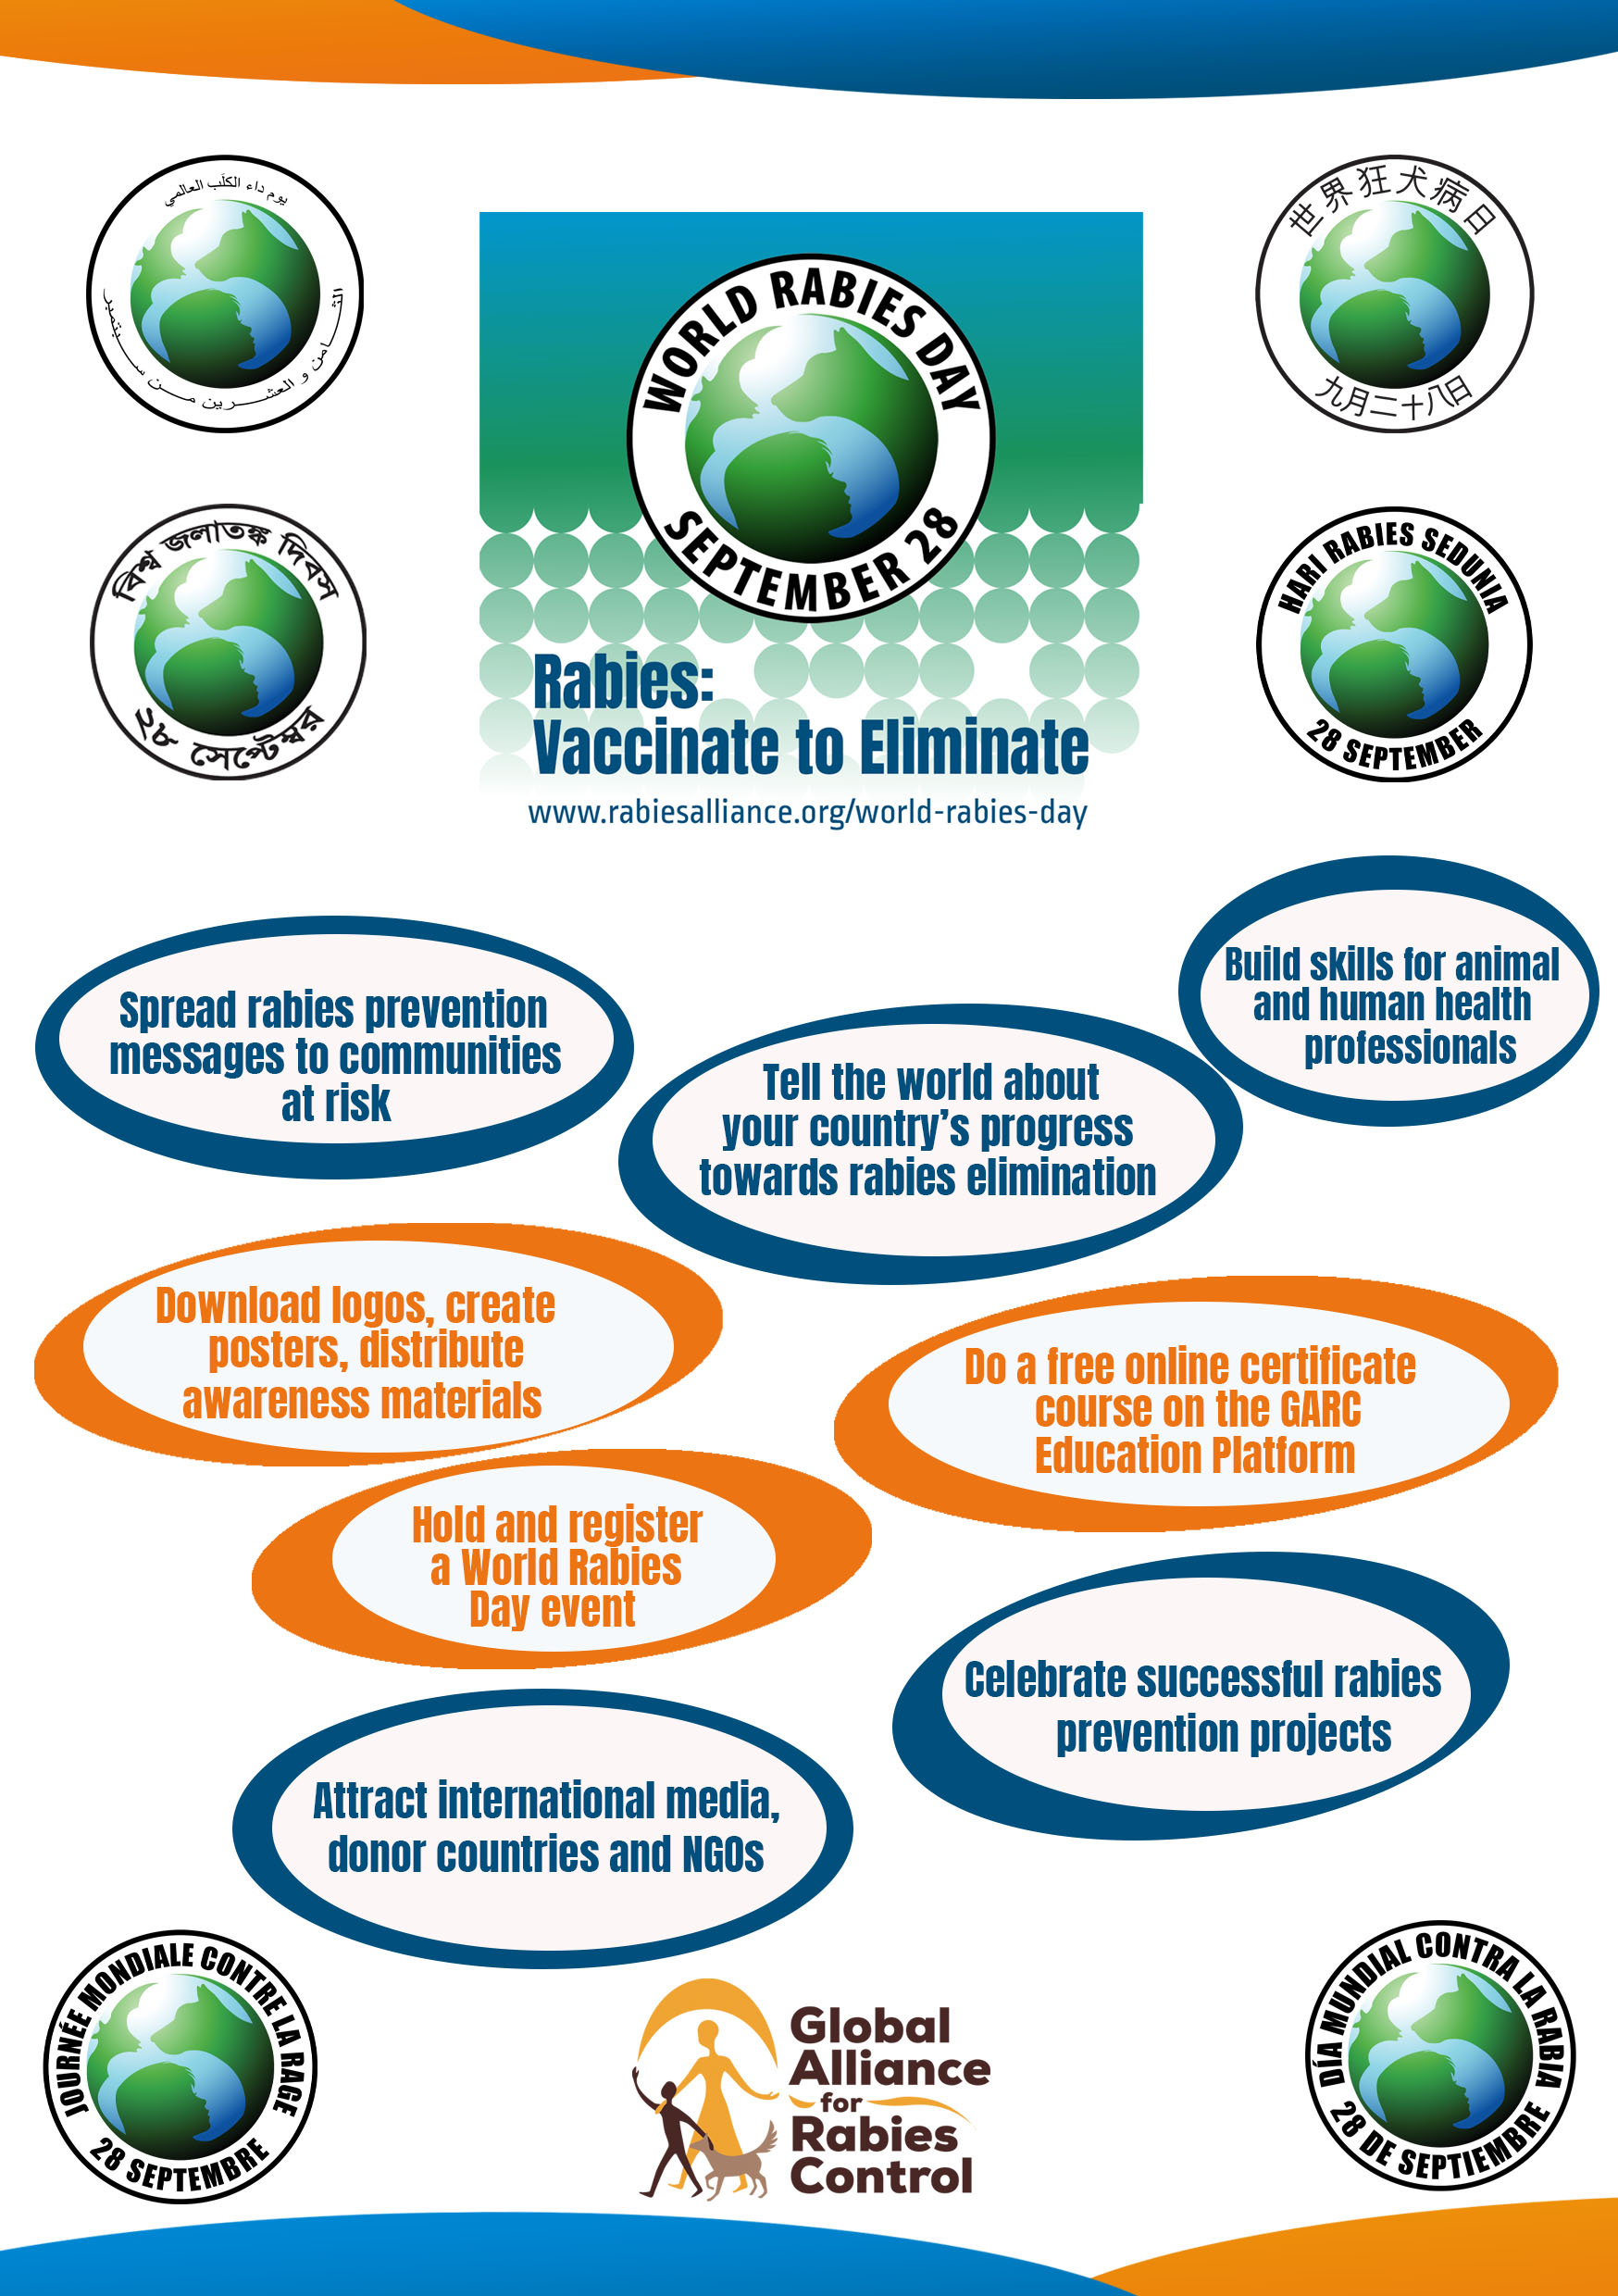 World Rabies Day 2019